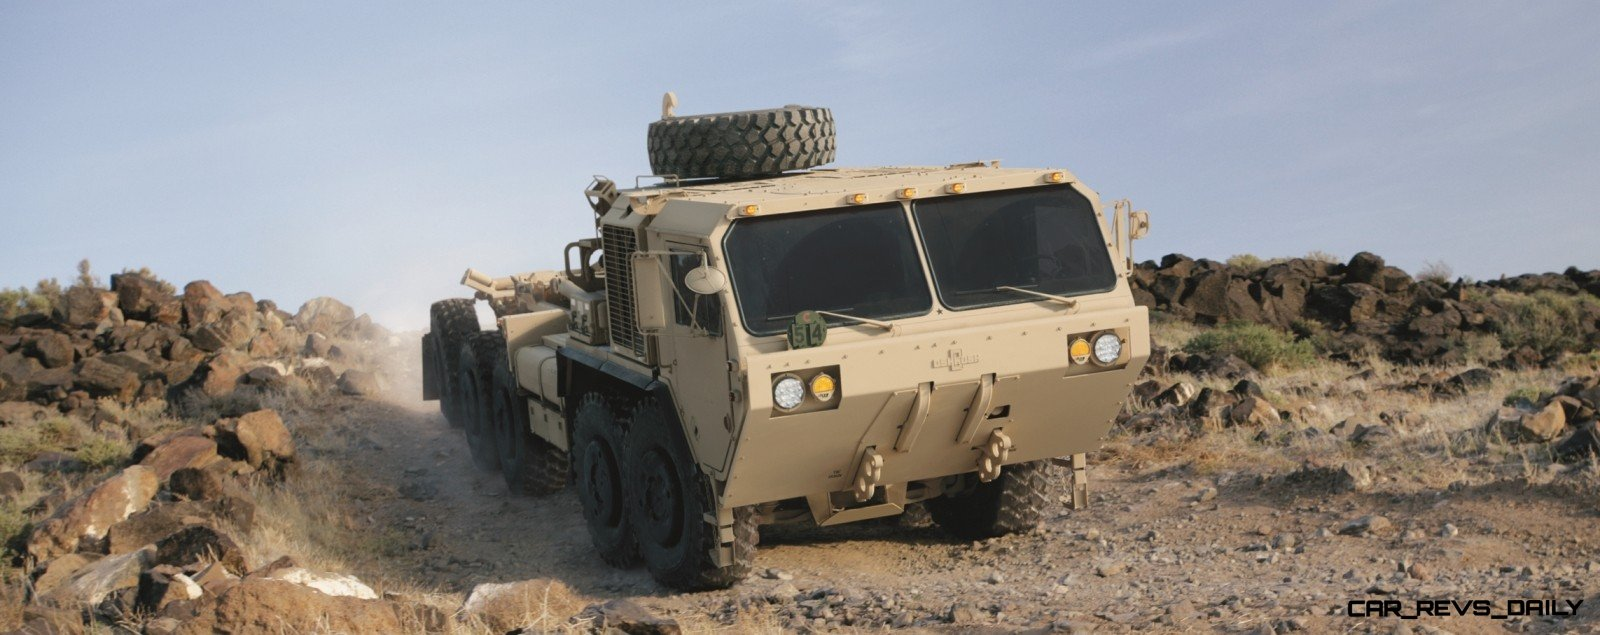 CarRevsDaily.com - Oshkosh Defense Medium and Heavy Showcase 16